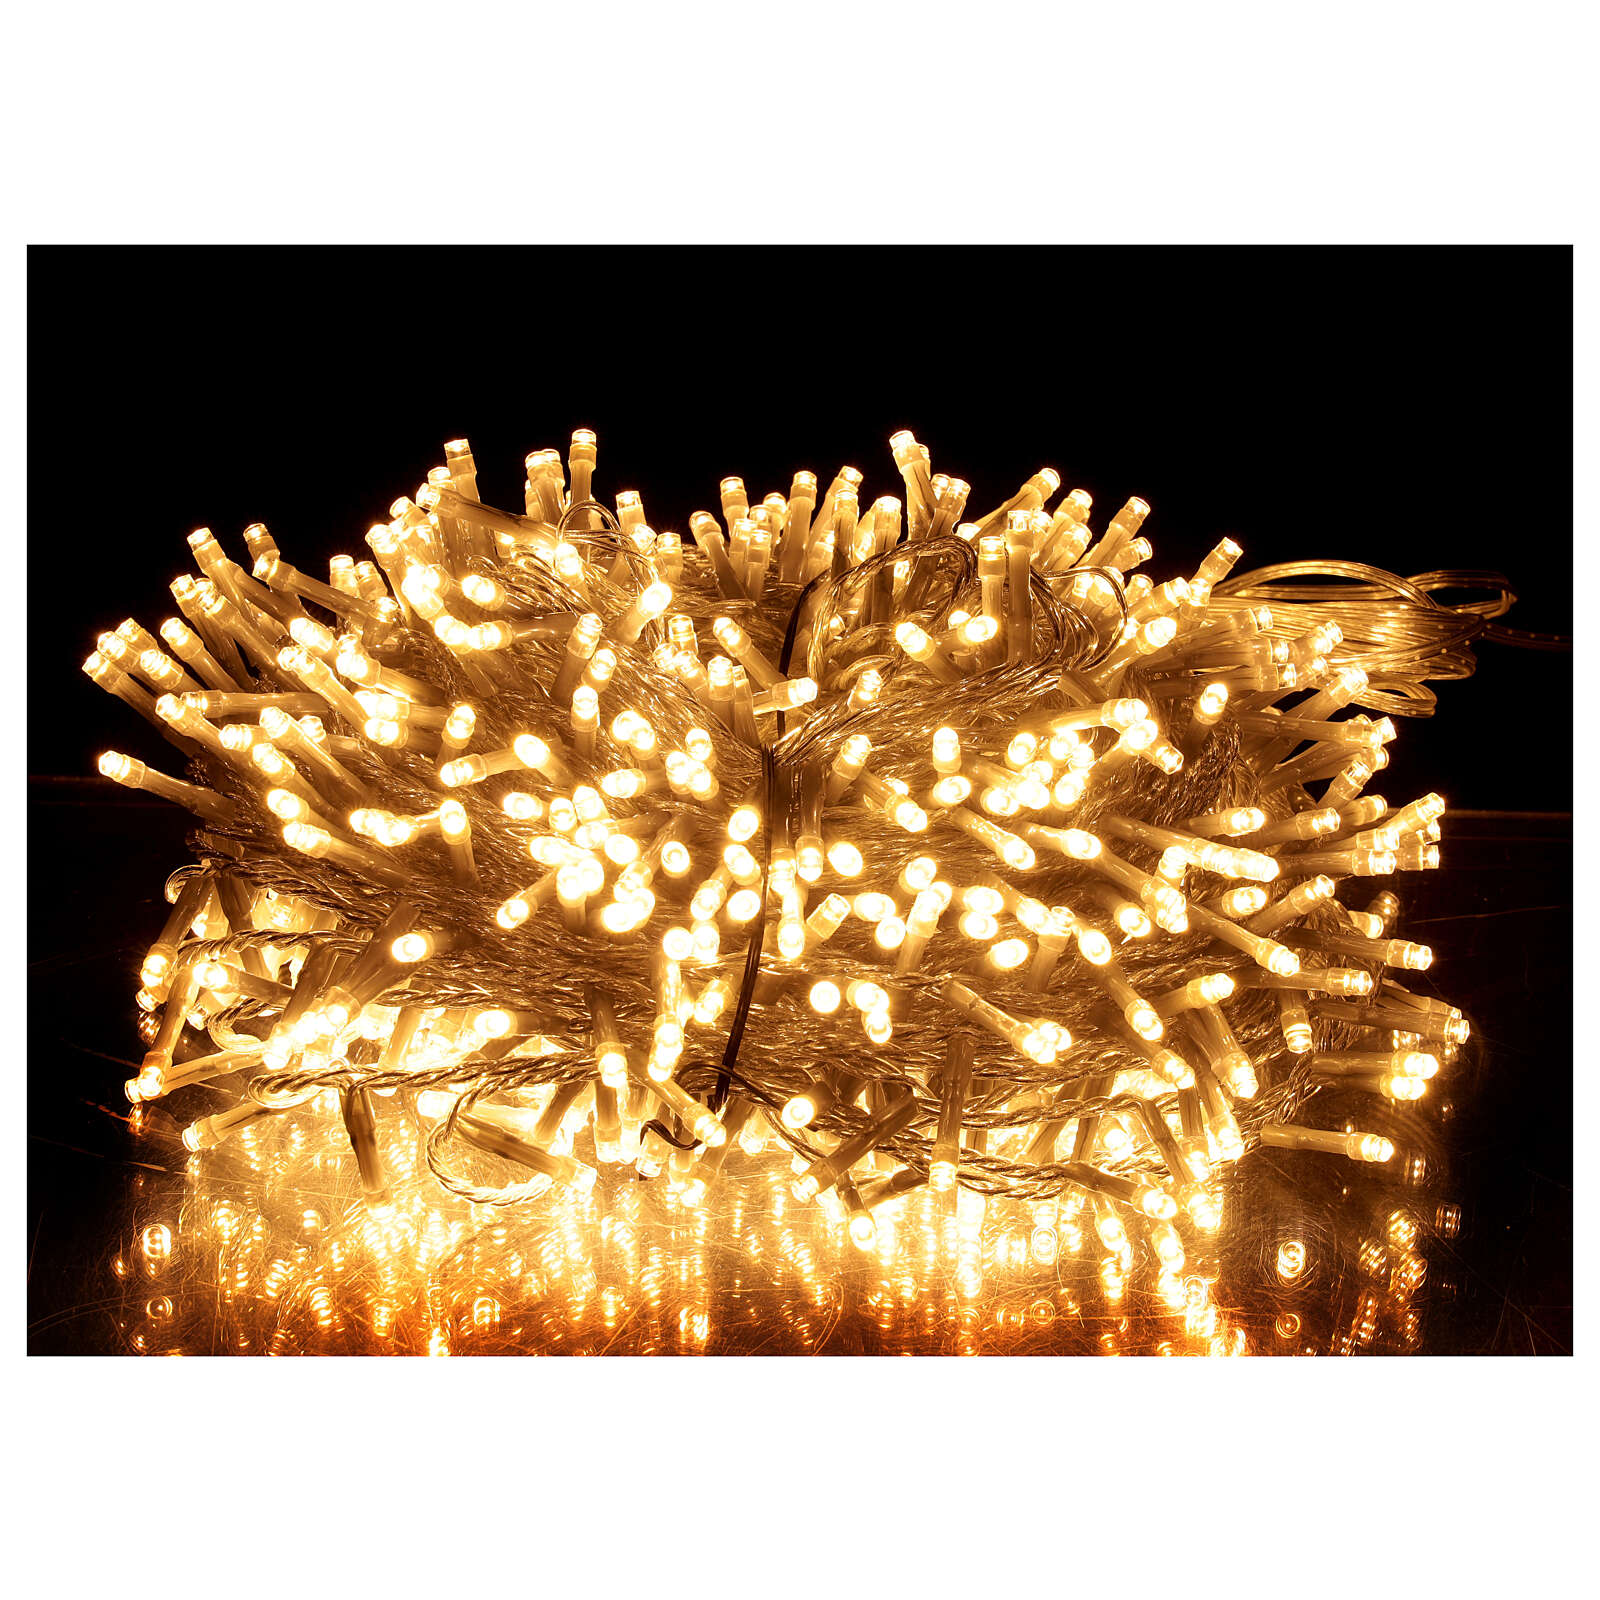 String lights 750 LEDs warm white clear wire indoor outdoor 37.5 m 3